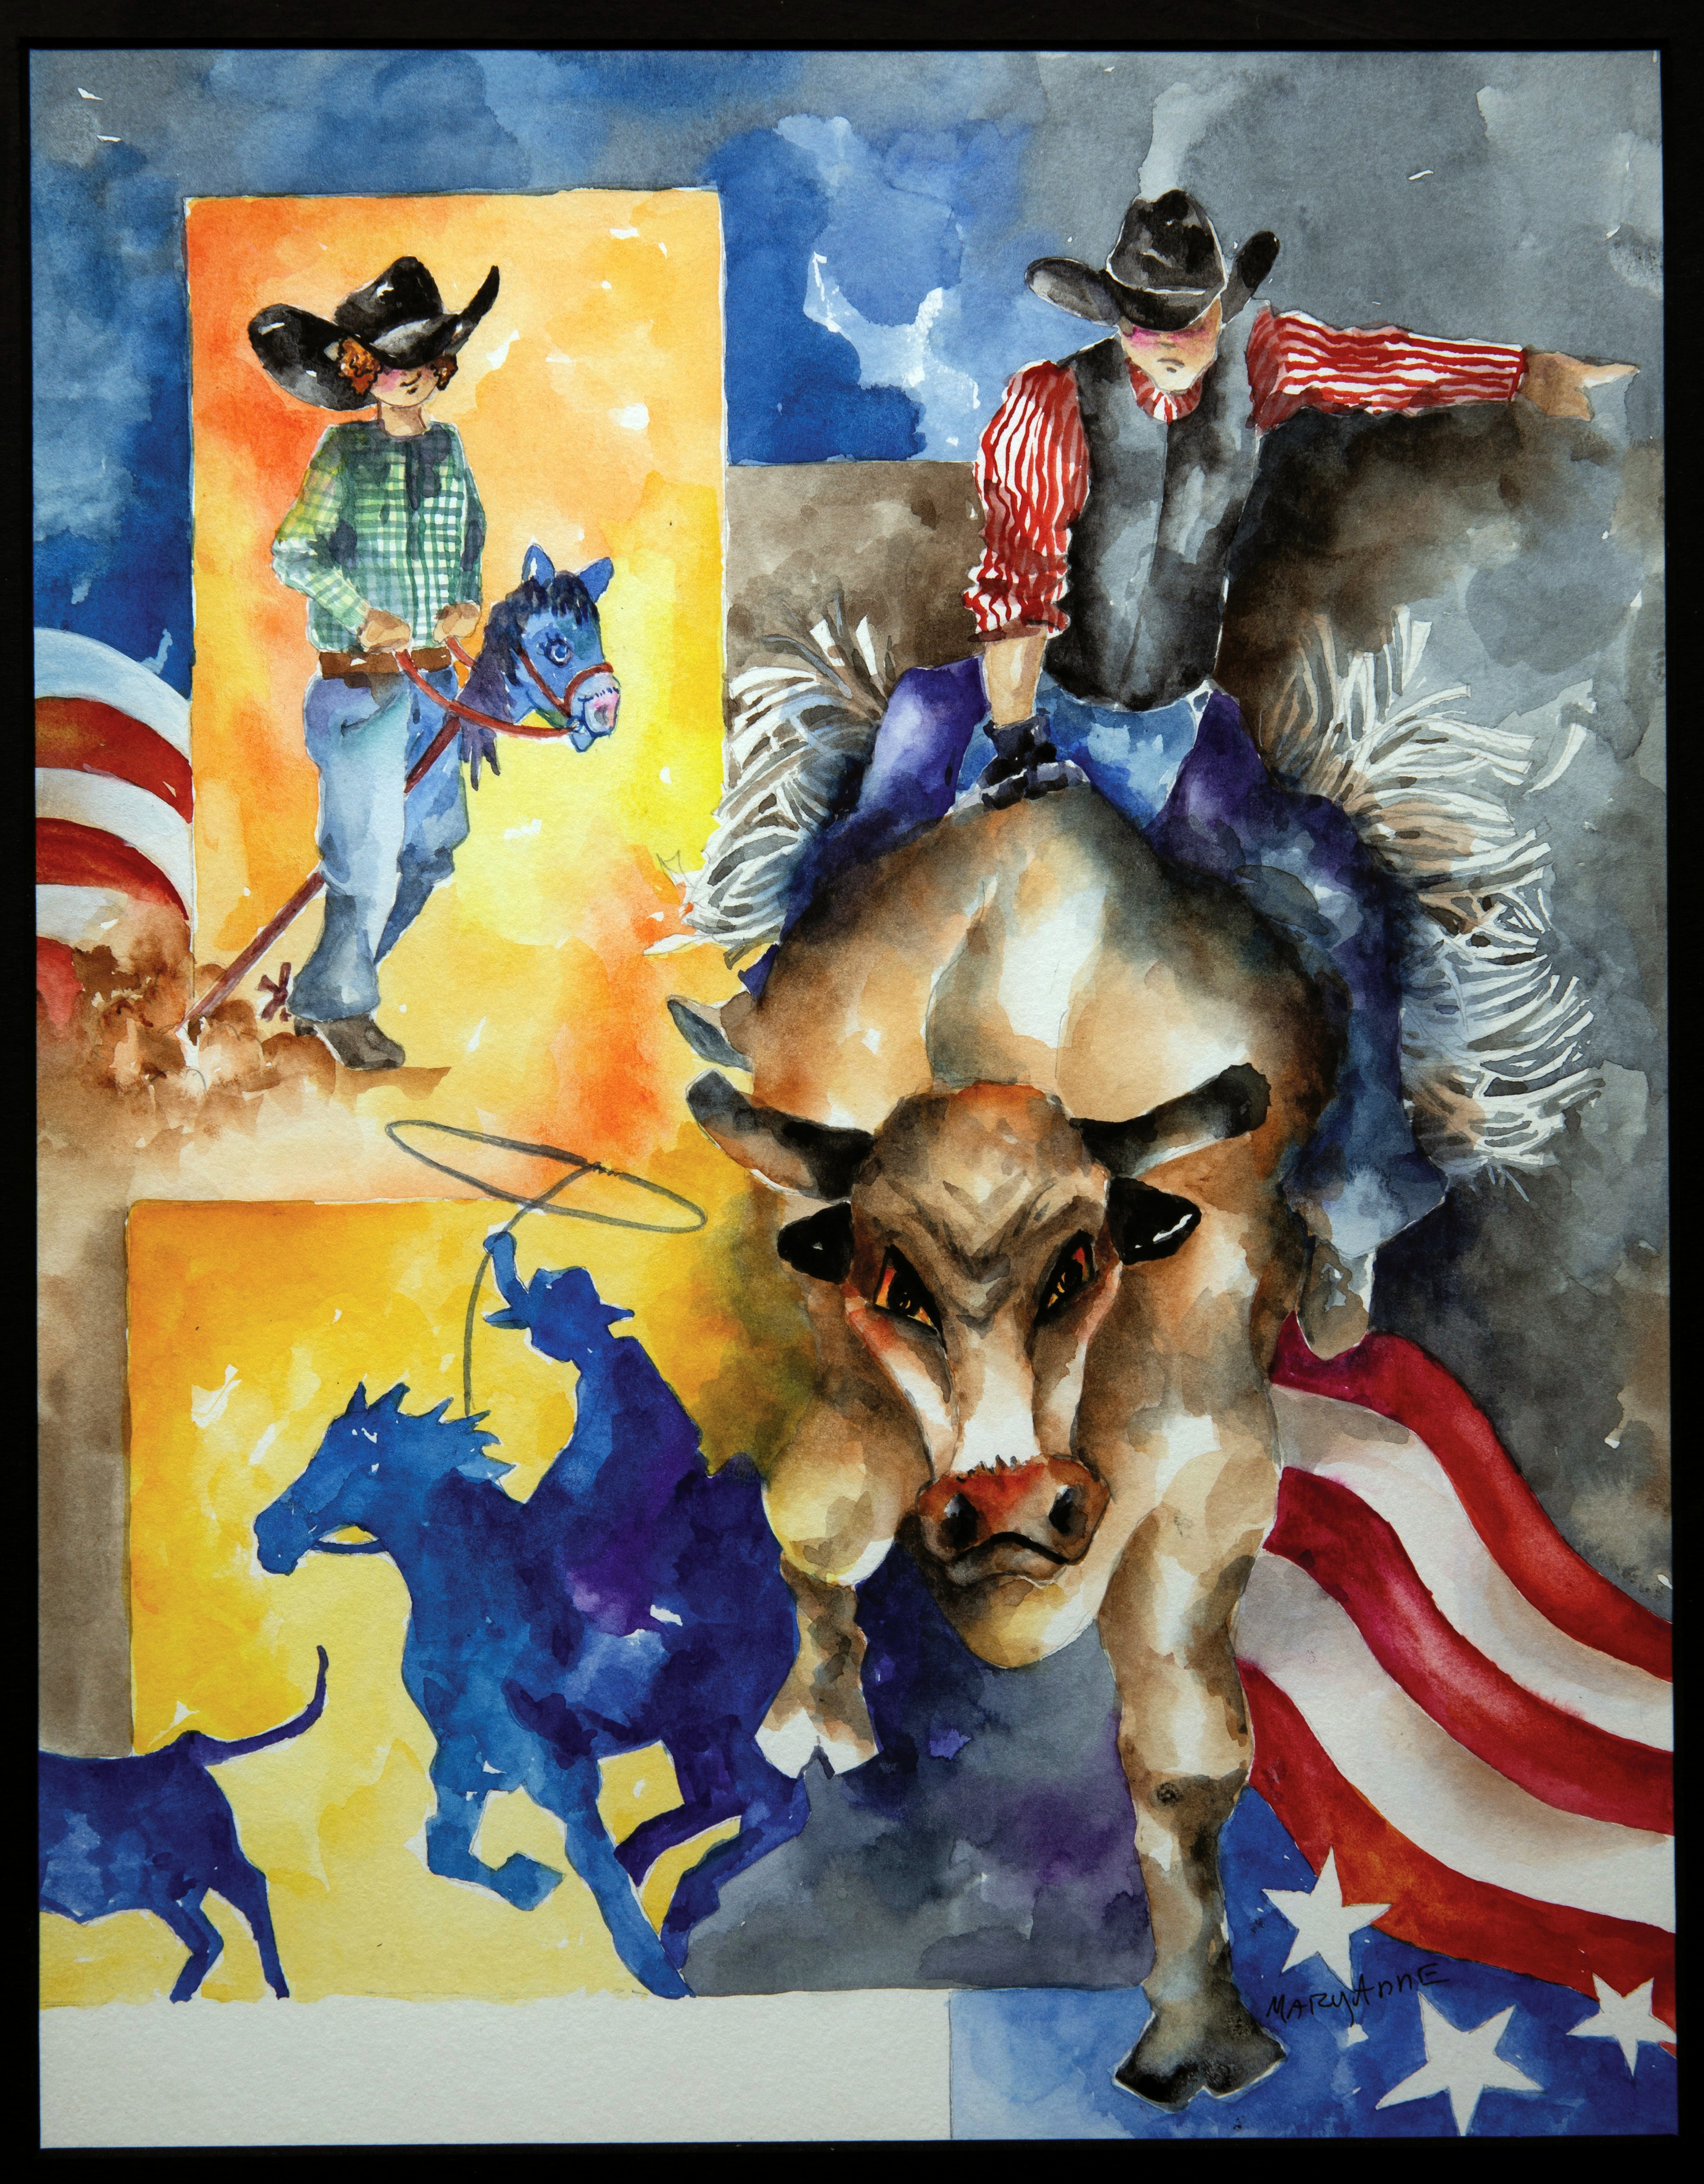 Painting - Rodeo - colorful painting in patriotic colors of red, white and blue with some yellow/orange in background. Painting features bull rider on a large bull, young boy riding a stick horse and a silhouette in blue of a cowboy roping a steer.